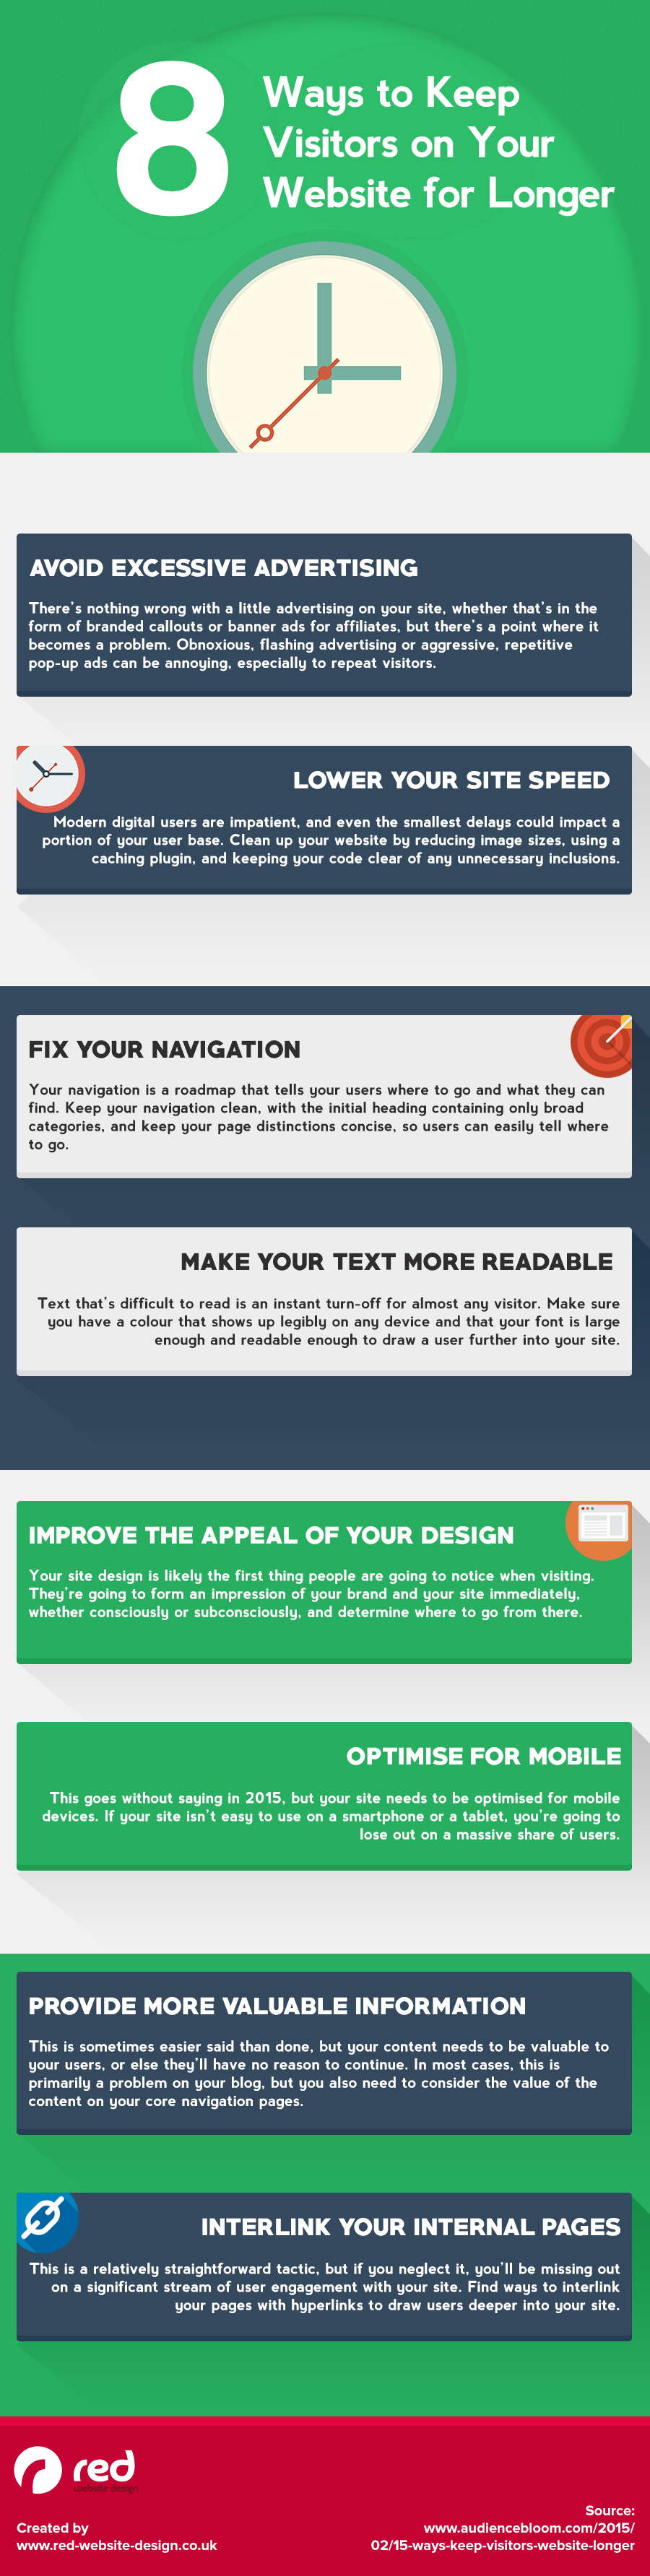 8-really-easy-ways-to-keep-visitors-on-your-website-for-longer1